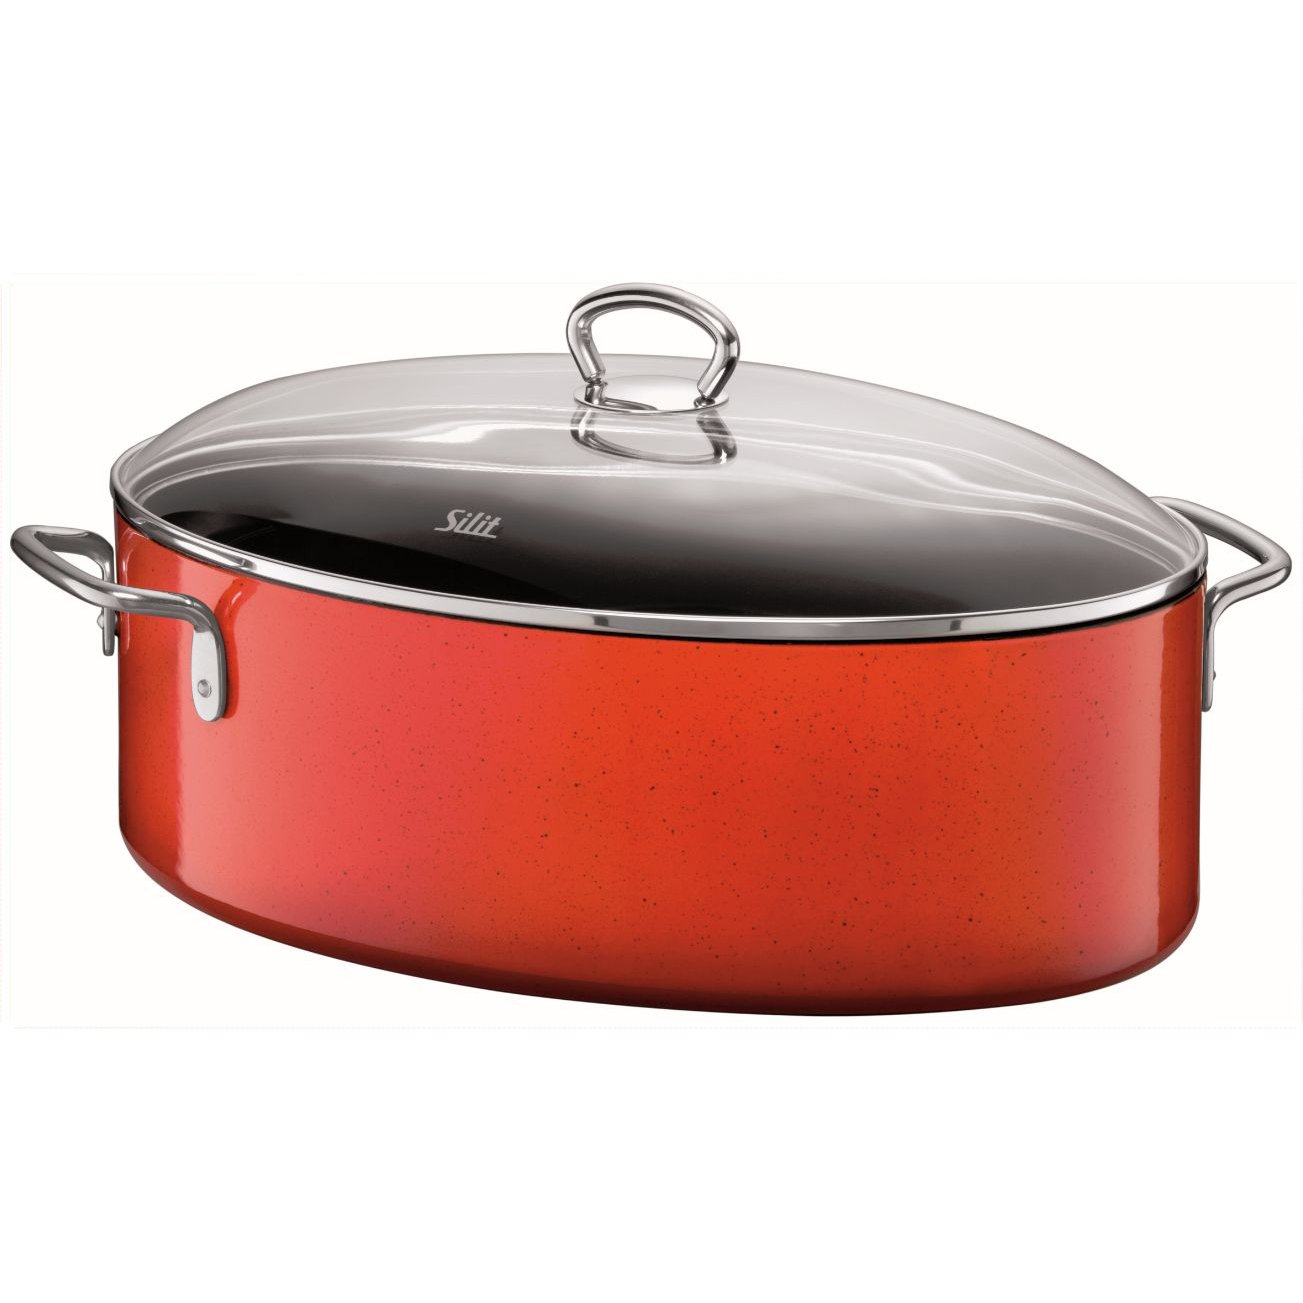 Silit  Passion  8-1/4-Quart Oval Roasting Pan with Lid, Energy Red by Silit (Image #1)